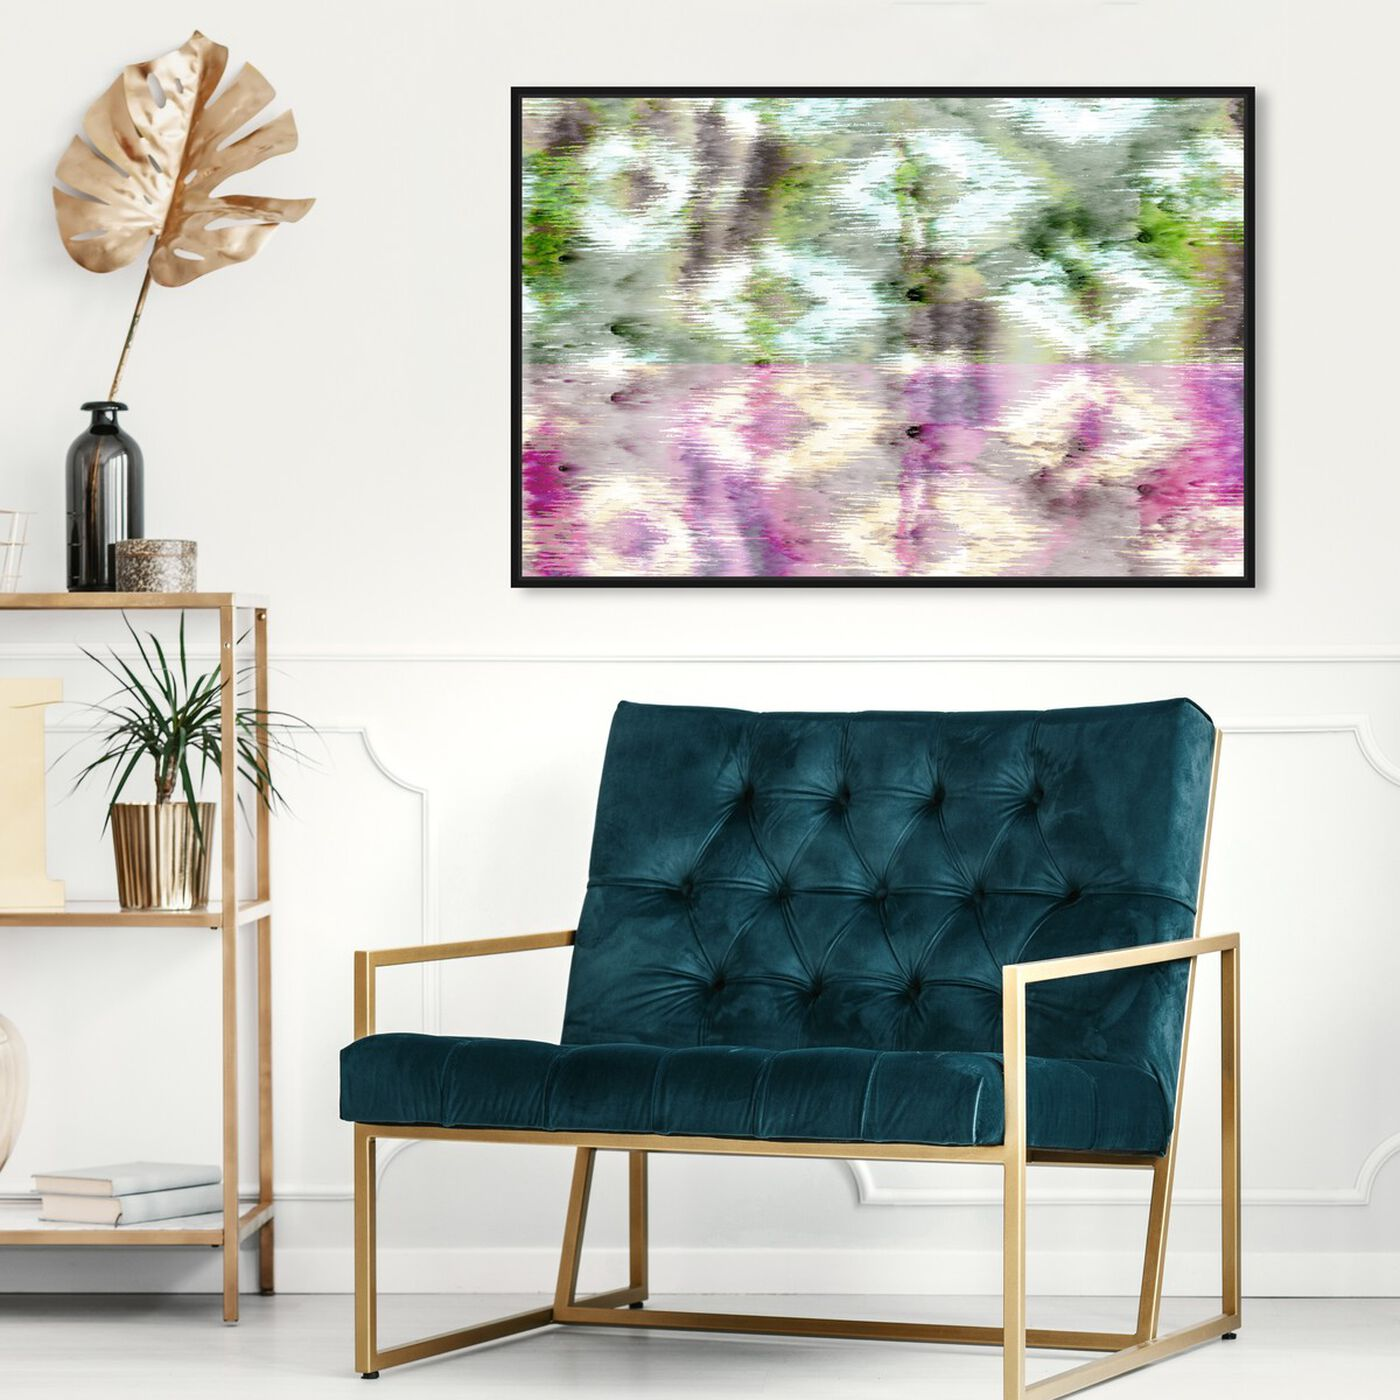 Hanging view of Morning Rain featuring abstract and patterns art.